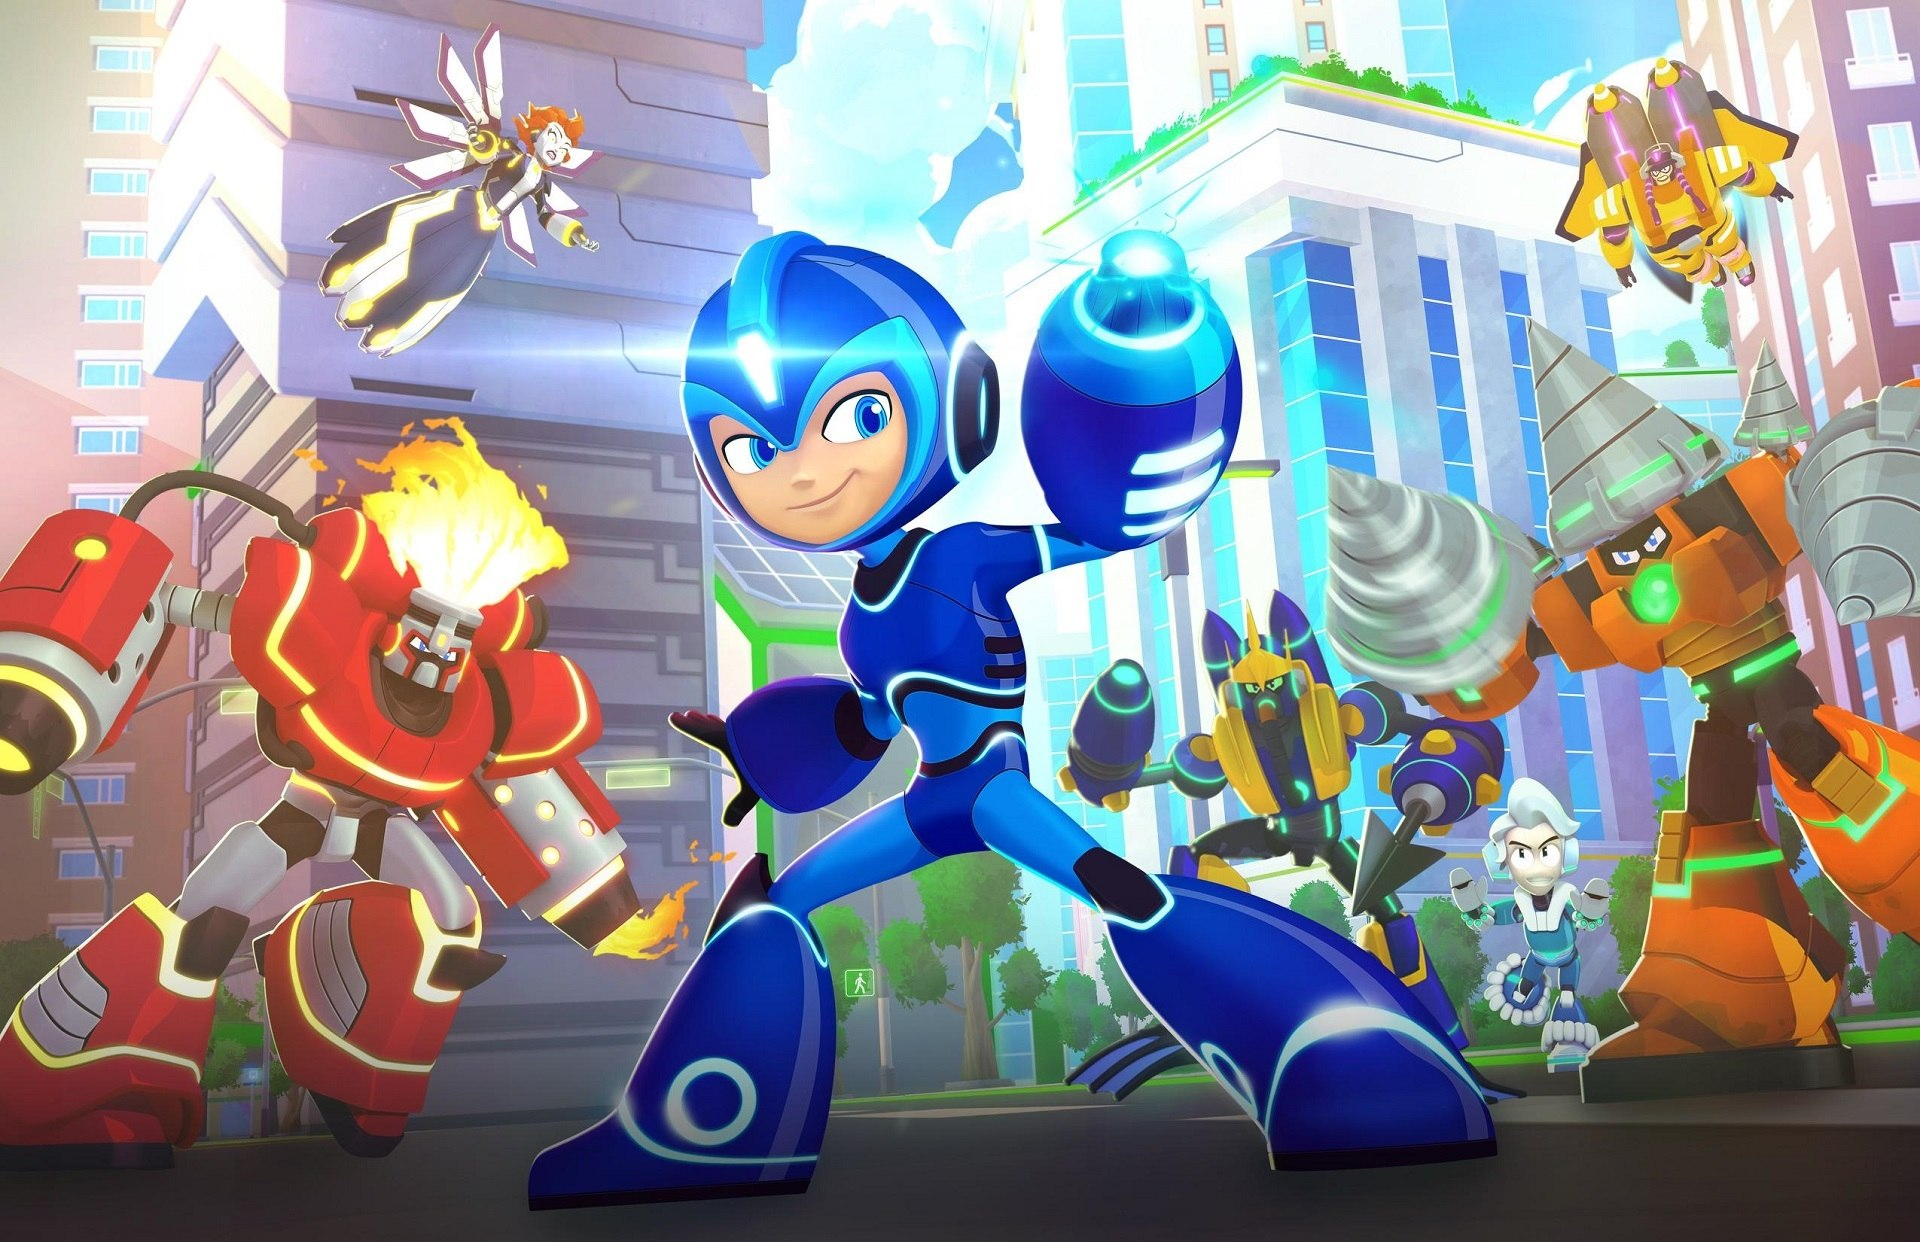 New Mega Man 11 Screenshots Confirm Touchman and New Weapon Blazing Torch